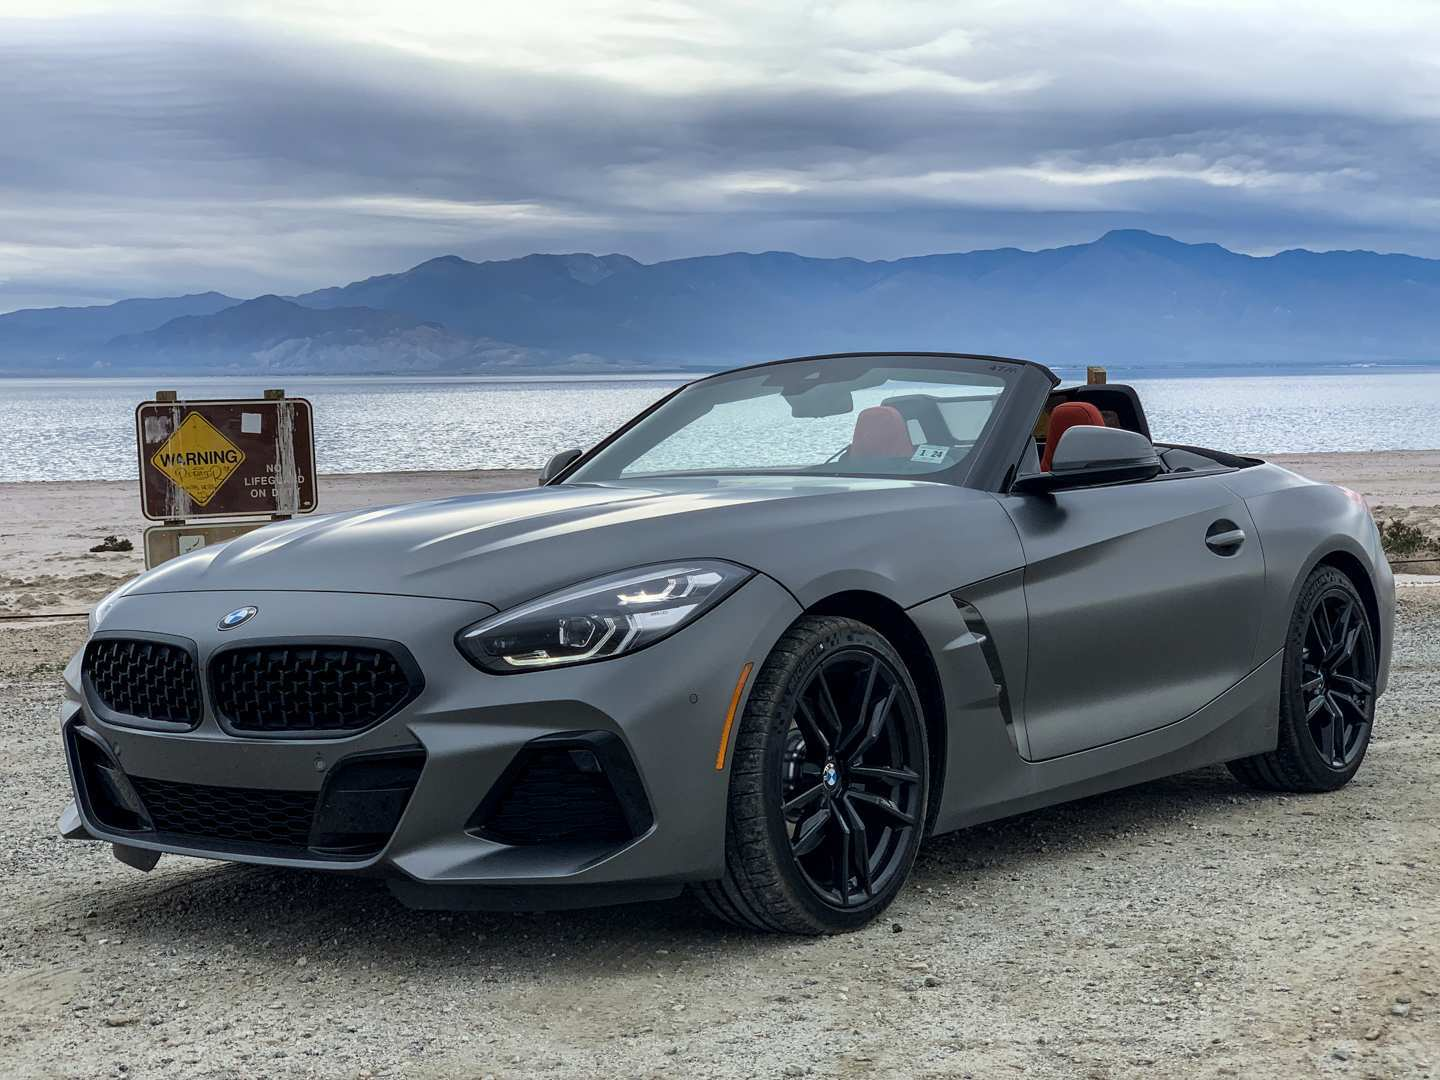 63 All New The Bmw Z4 2019 Engine First Drive Overview with The Bmw Z4 2019 Engine First Drive